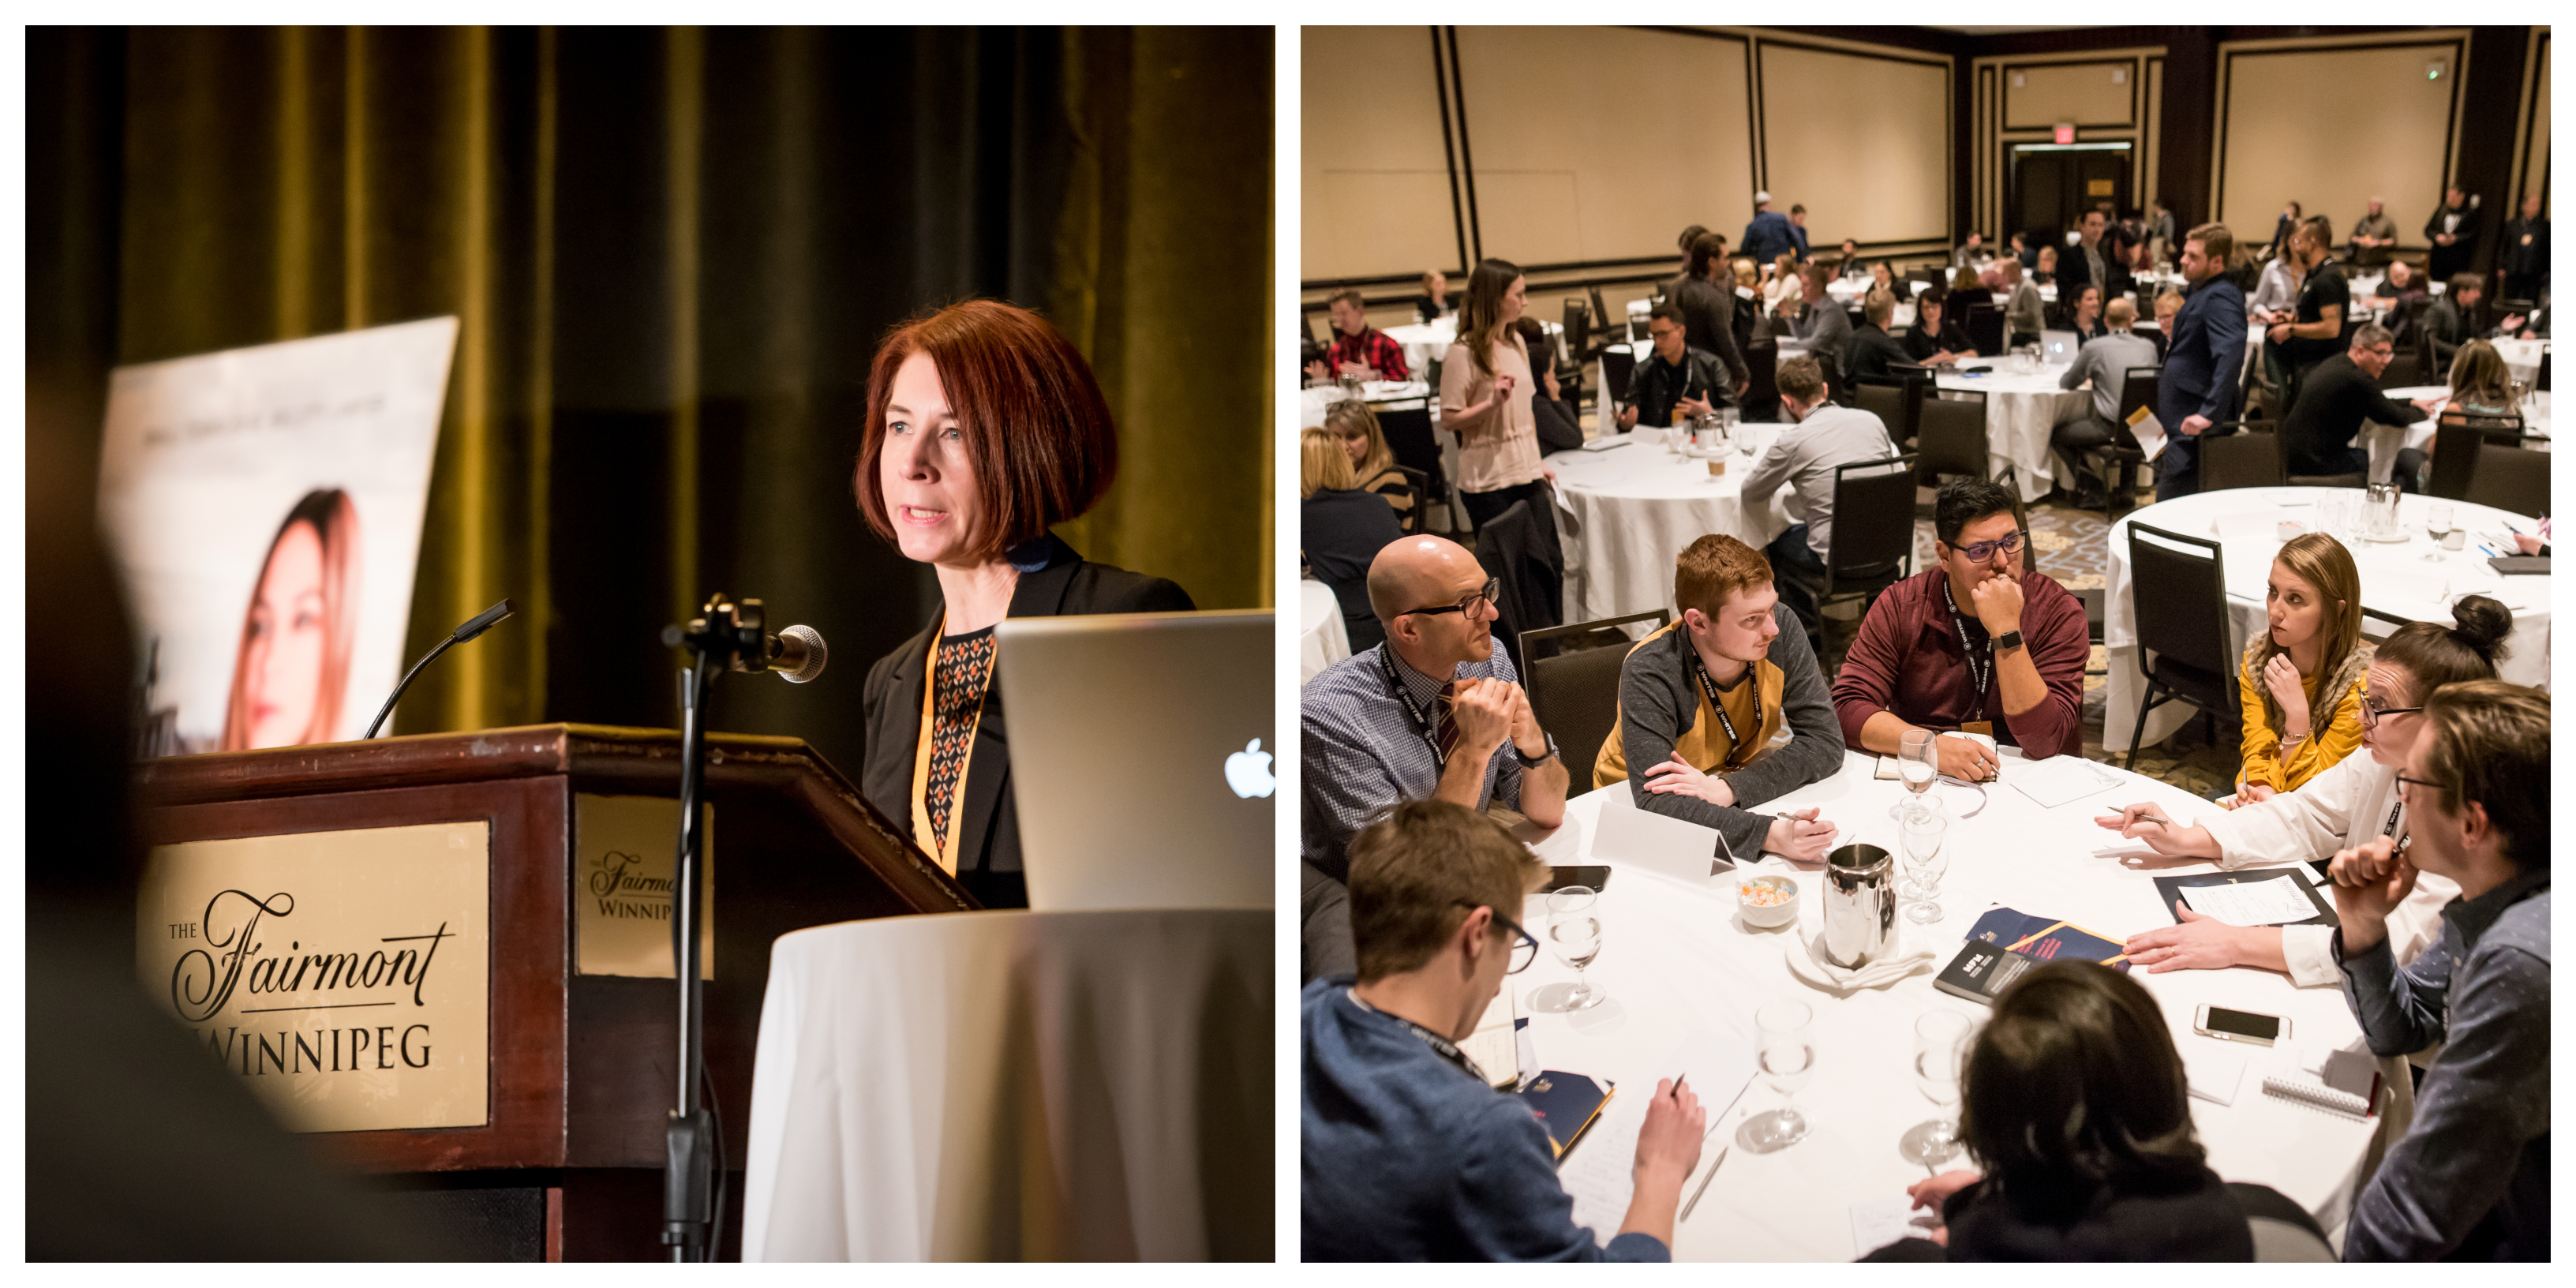 All Access is a strategic touchpoint for distributors, broadcasters and production executives to meet and do business with Manitoba's production industry (photos by Duncan McNairnay.)